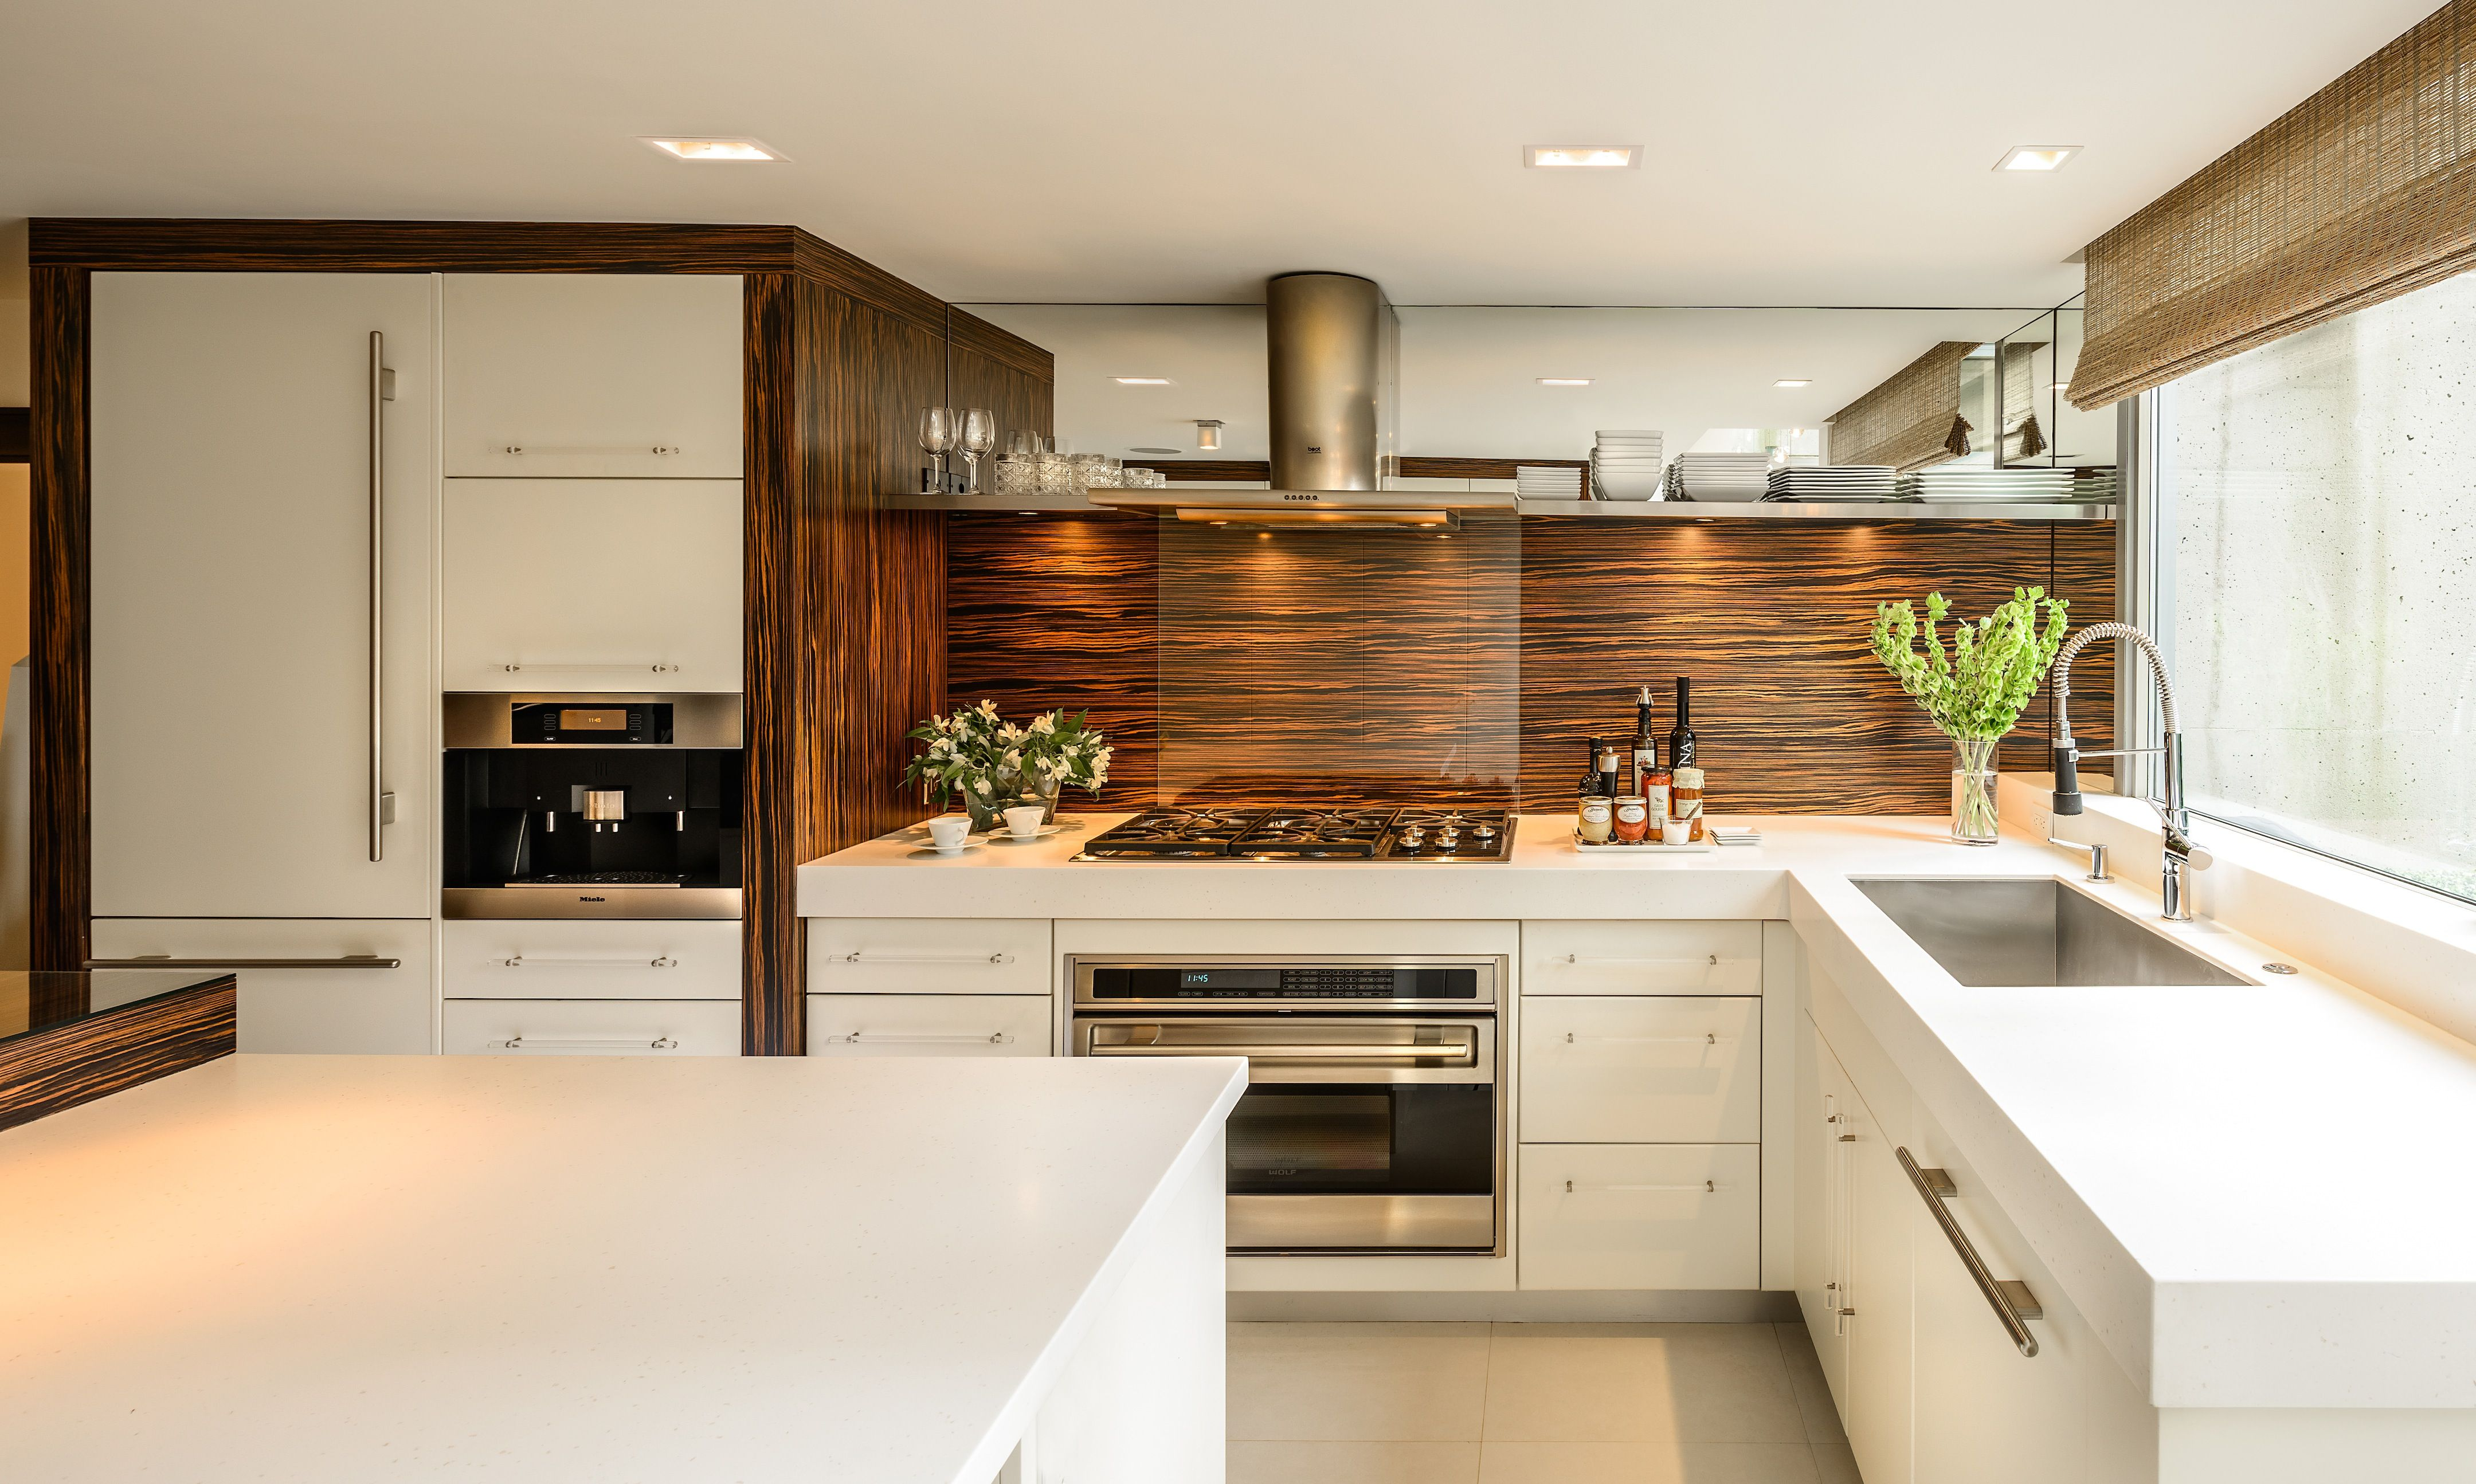 30 Before And After Kitchen Cabinet Refacing Ideas Before And After Diy Cabinet Refacing Kitchen Ideas On A Budget Modern Laminate Contemporary Kitchen Design Kitchen Design Contemporary Kitchen